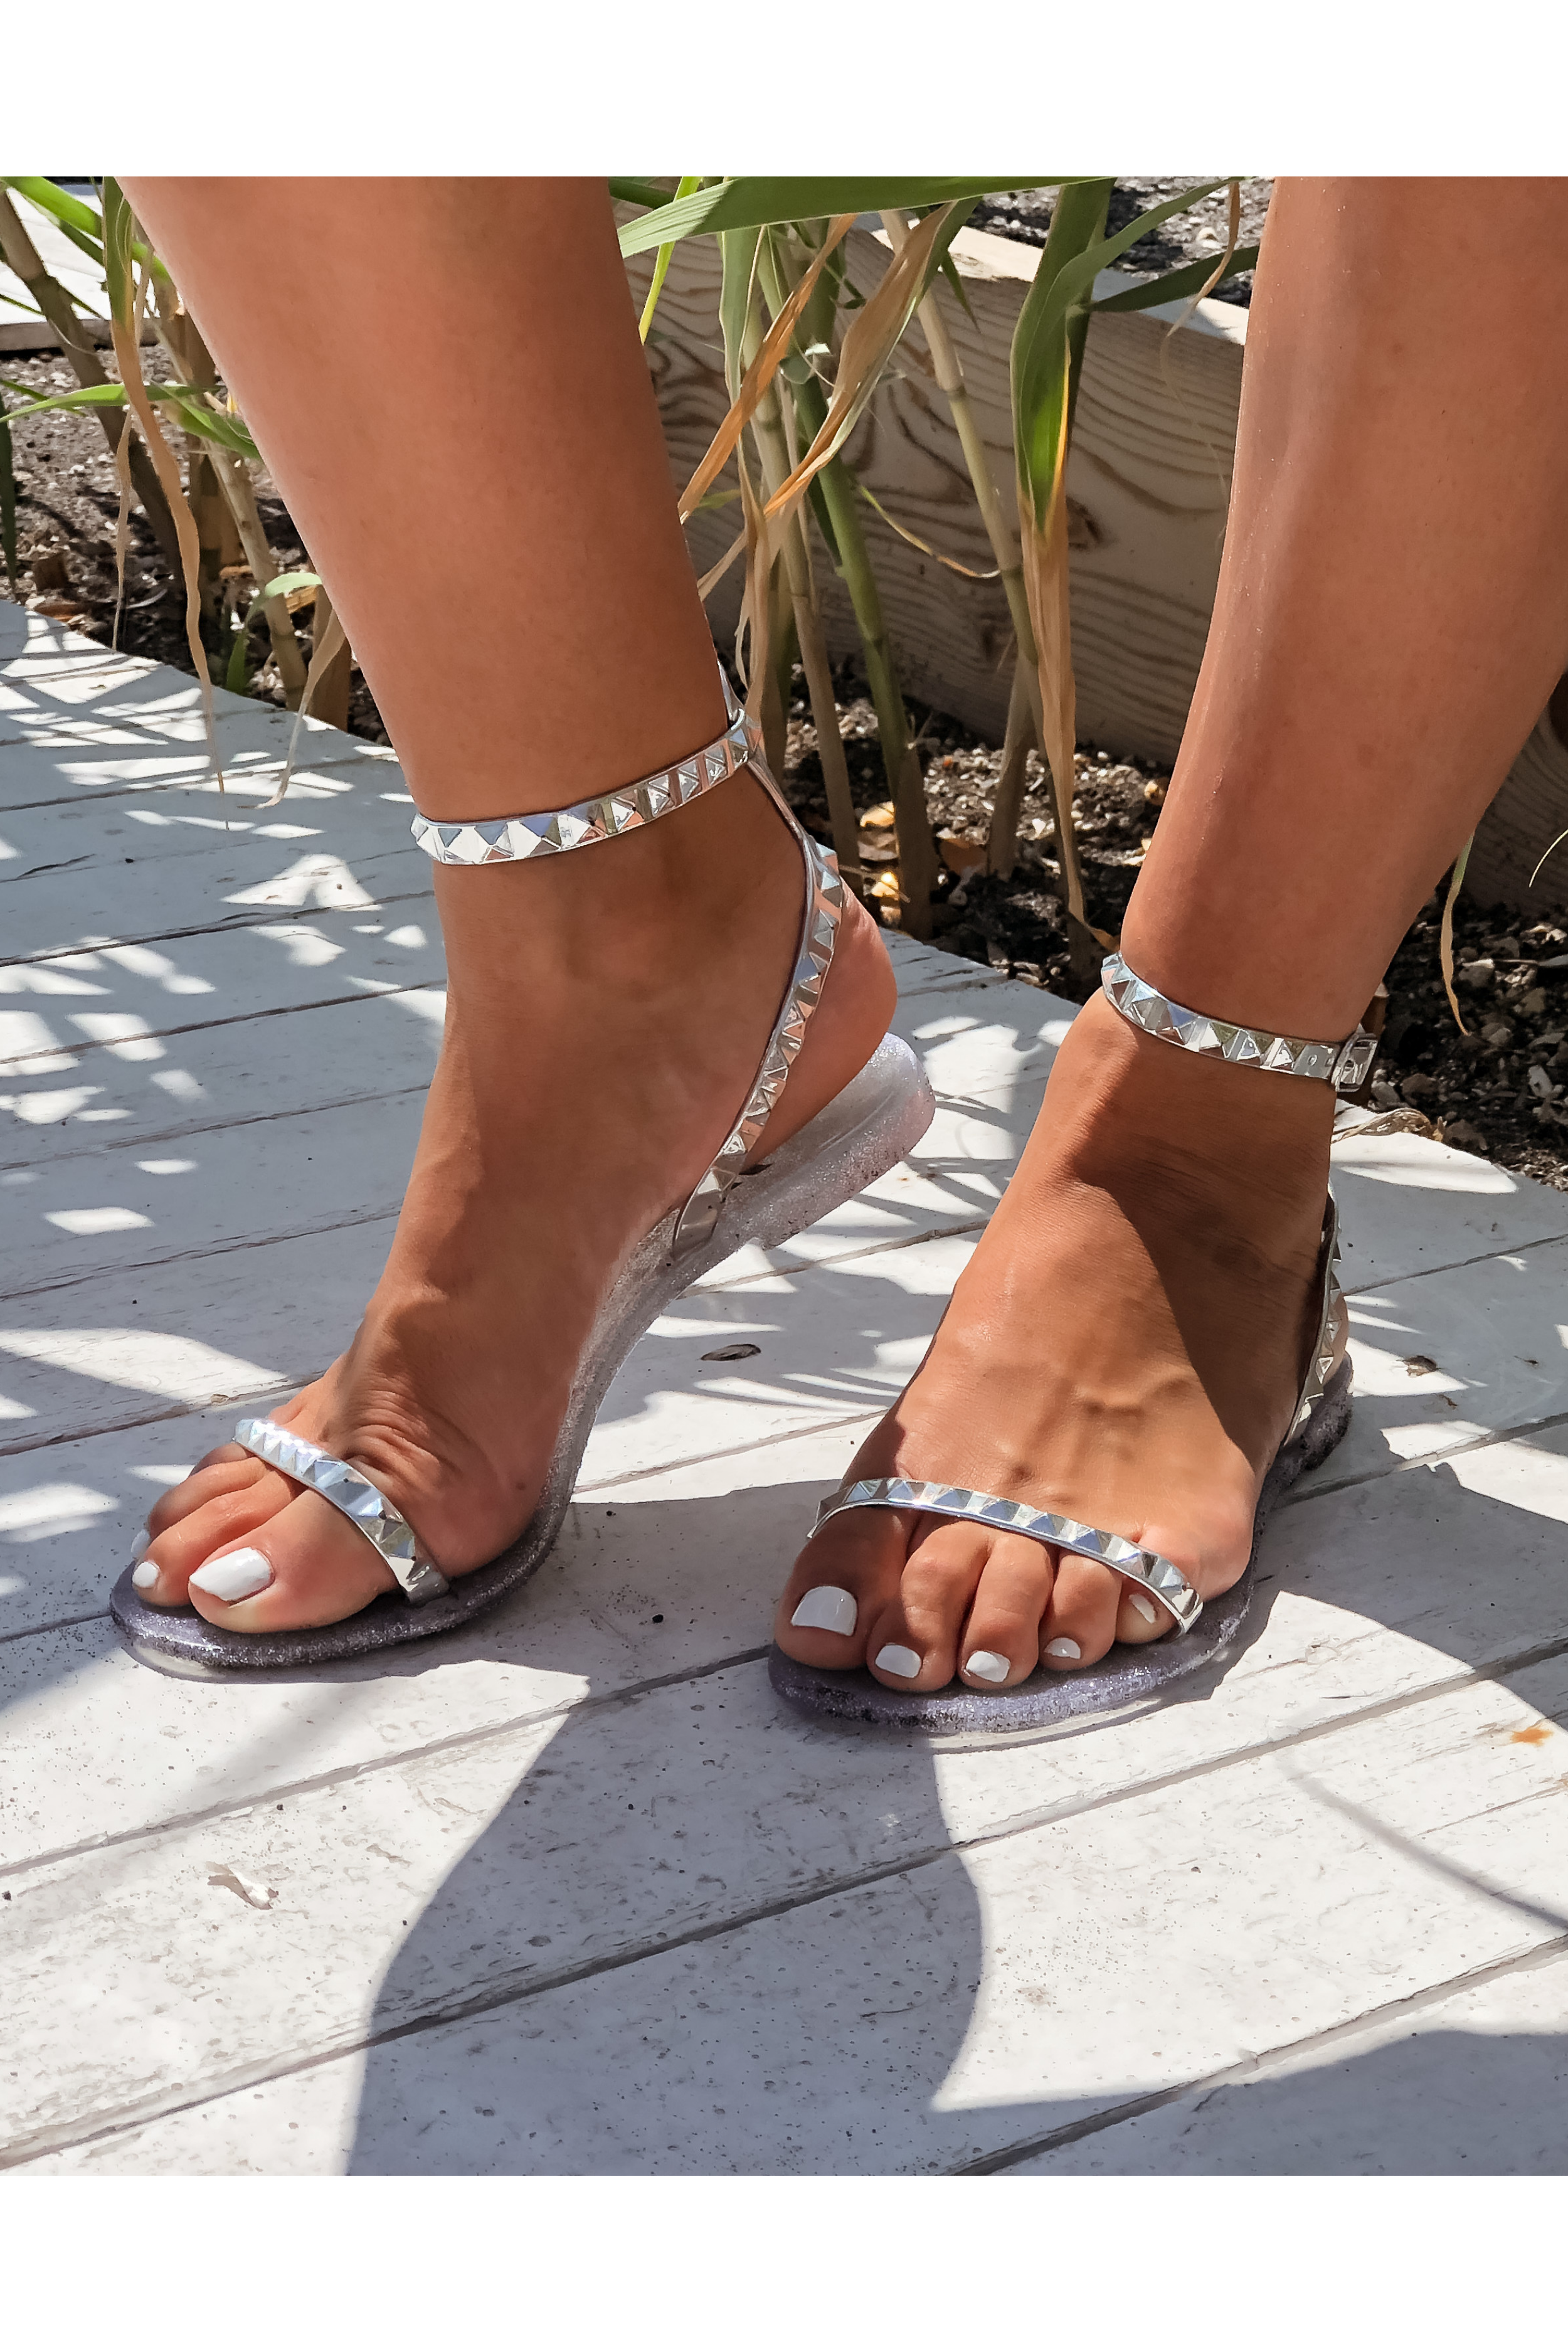 Silver Jelly Ankle Strap Studded Sandals by Alexandria Brandao Shoes.